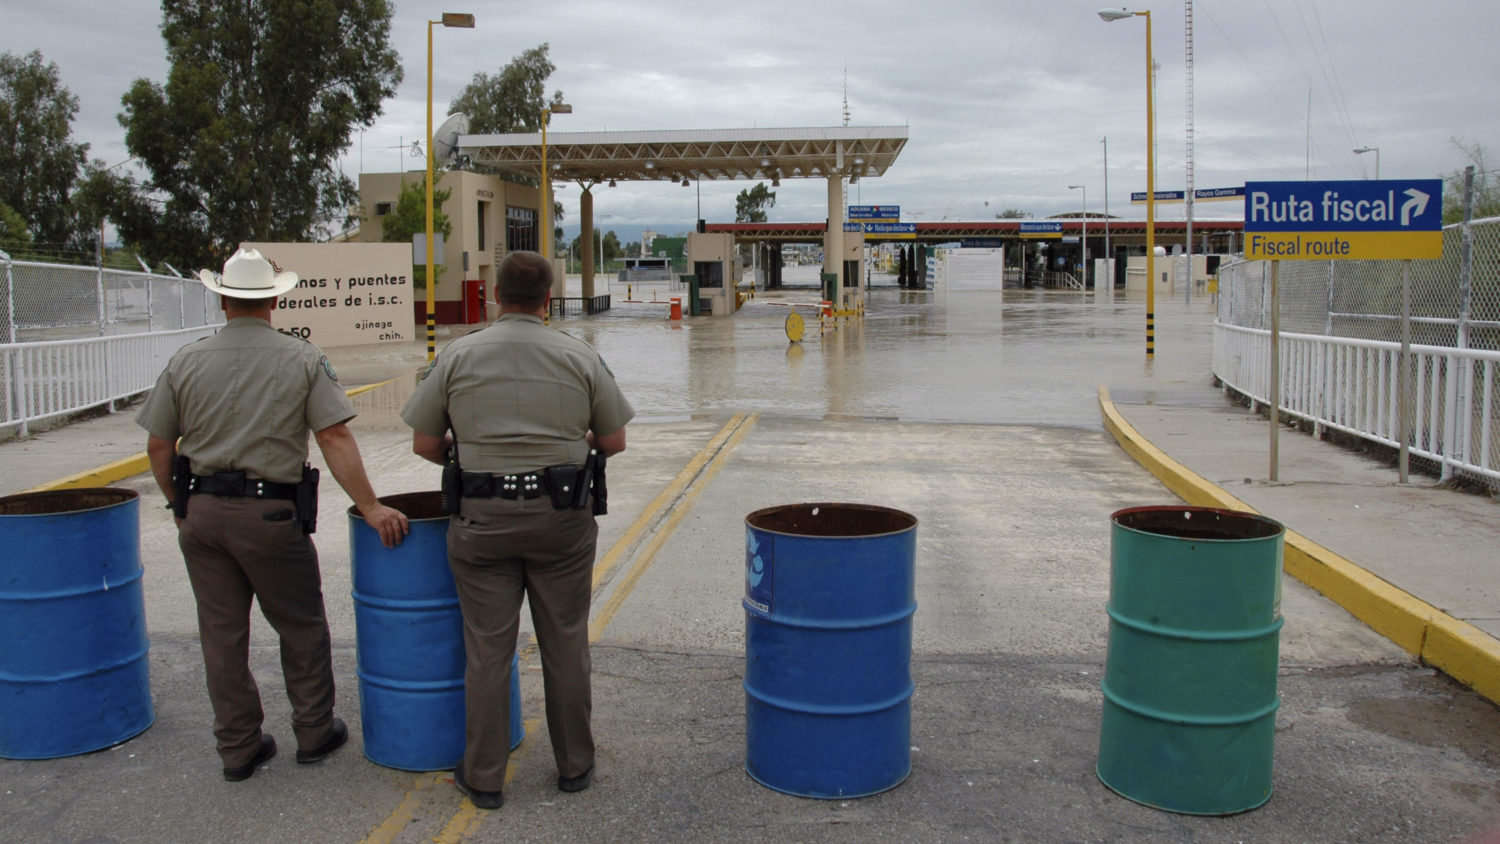 Mexico Worries That A New Border Wall Will Worsen Flooding